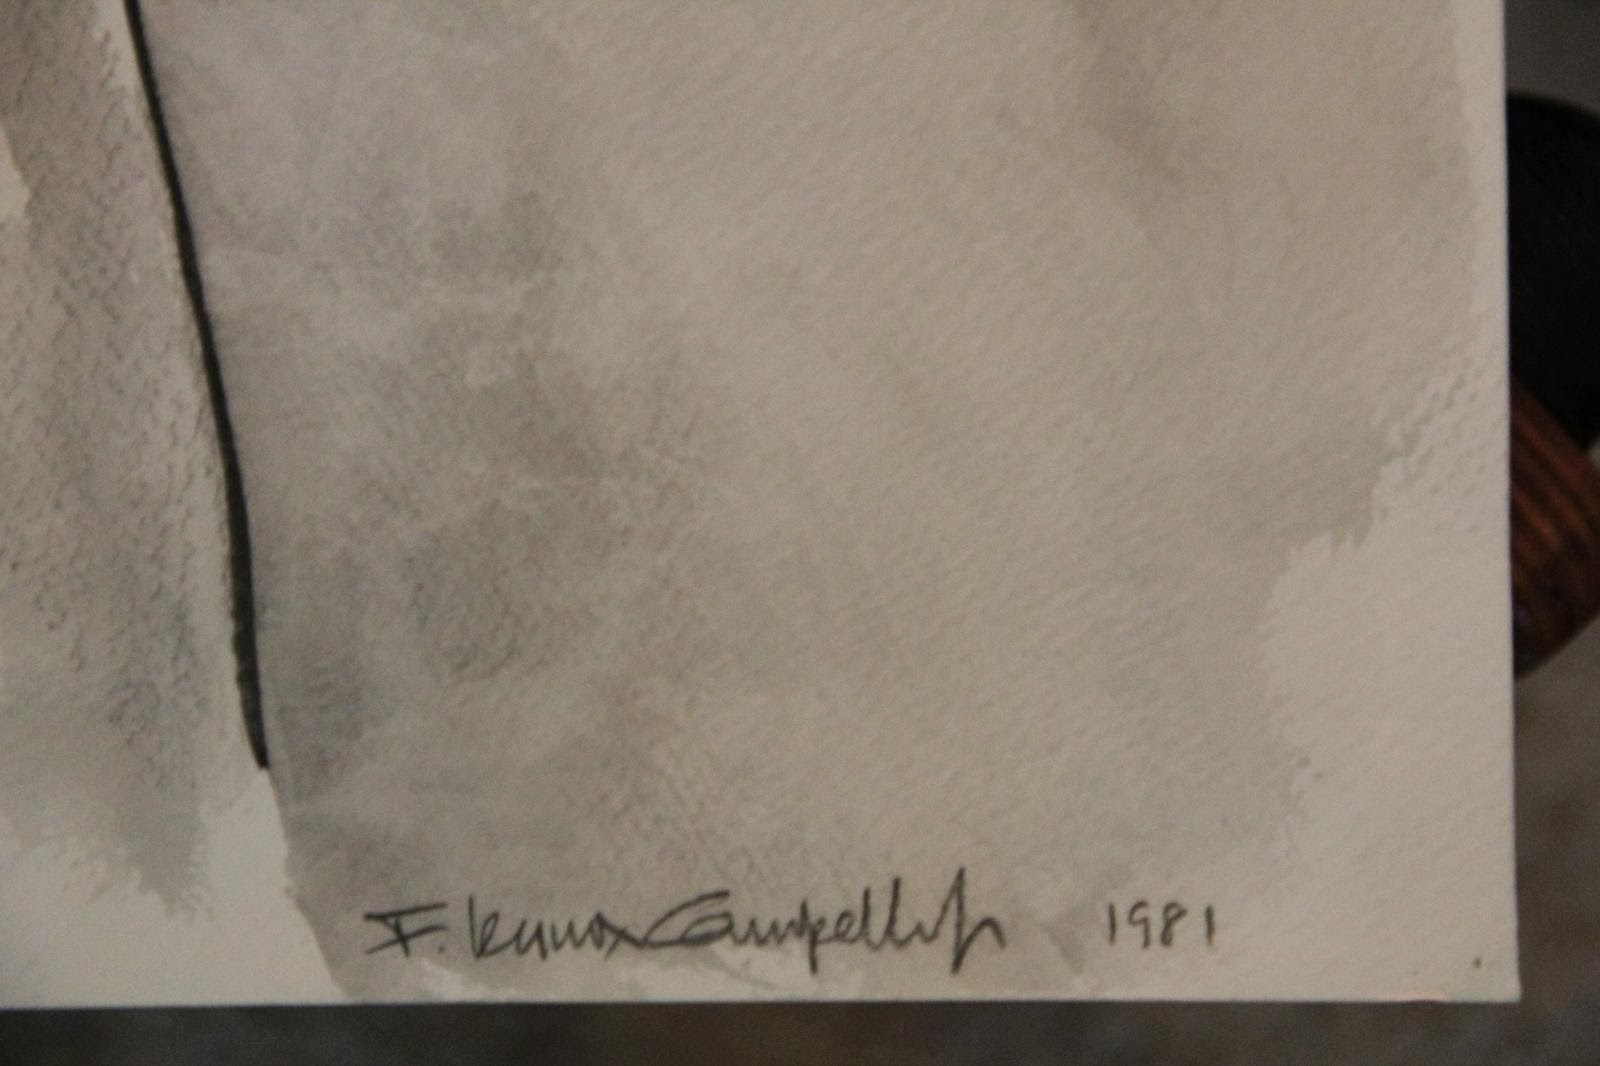 Confirmed signature on Male Nude Back, pen and ink wash by F. Lennox Campello 1981